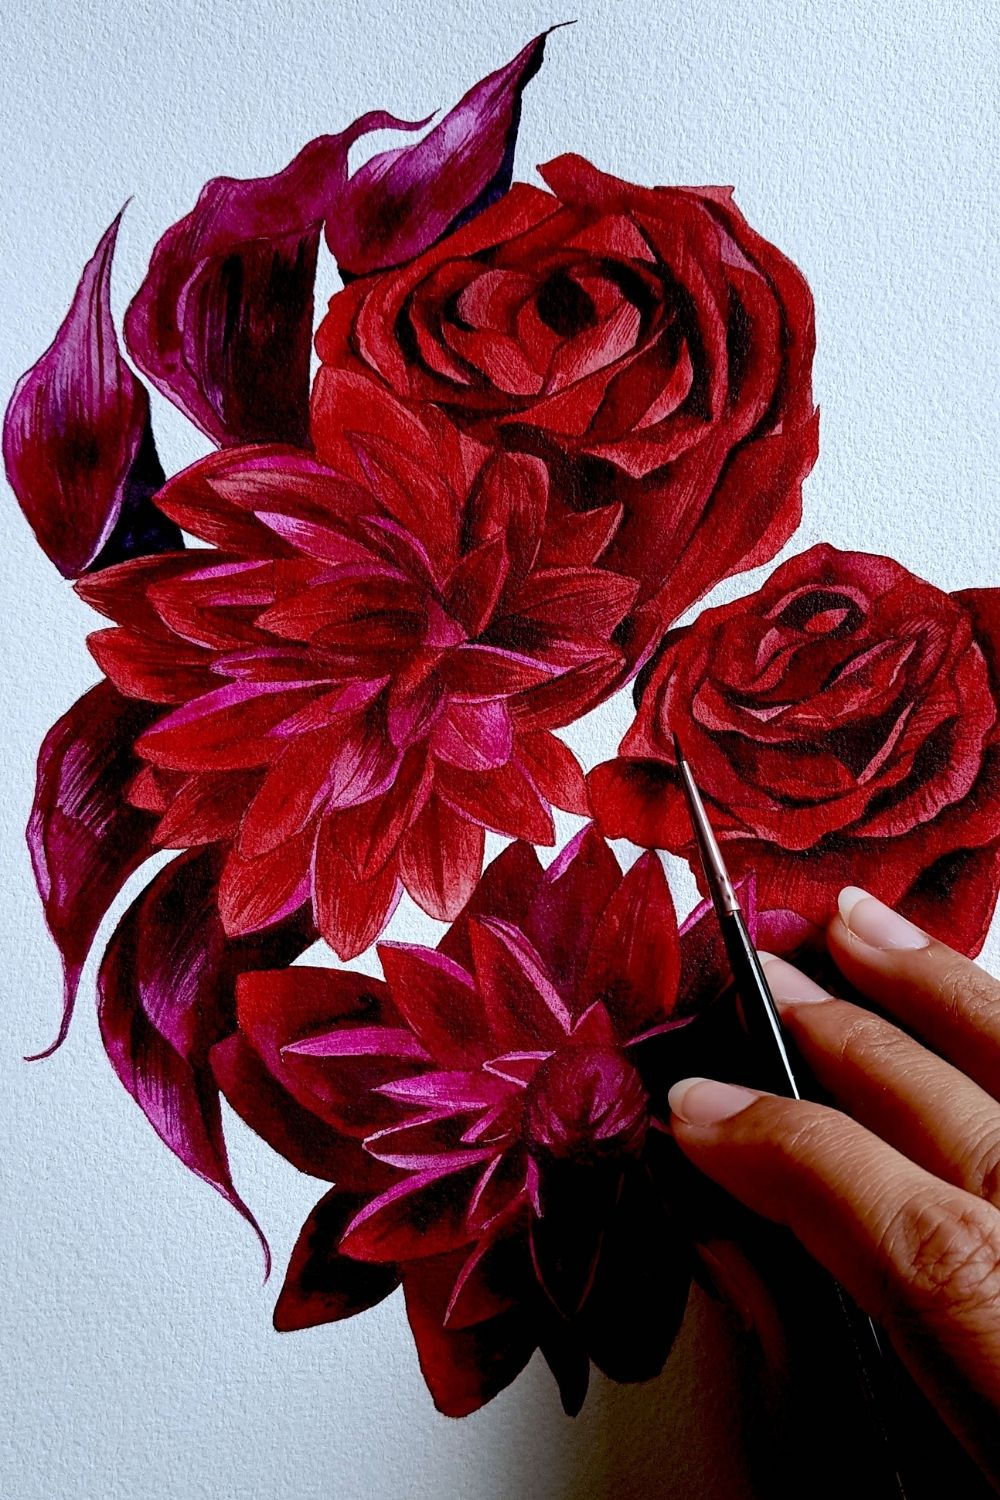 Custom designed artwork featuring detailed flower painting with deep rich red roses and dahlias for a private, luxury destination wedding in France